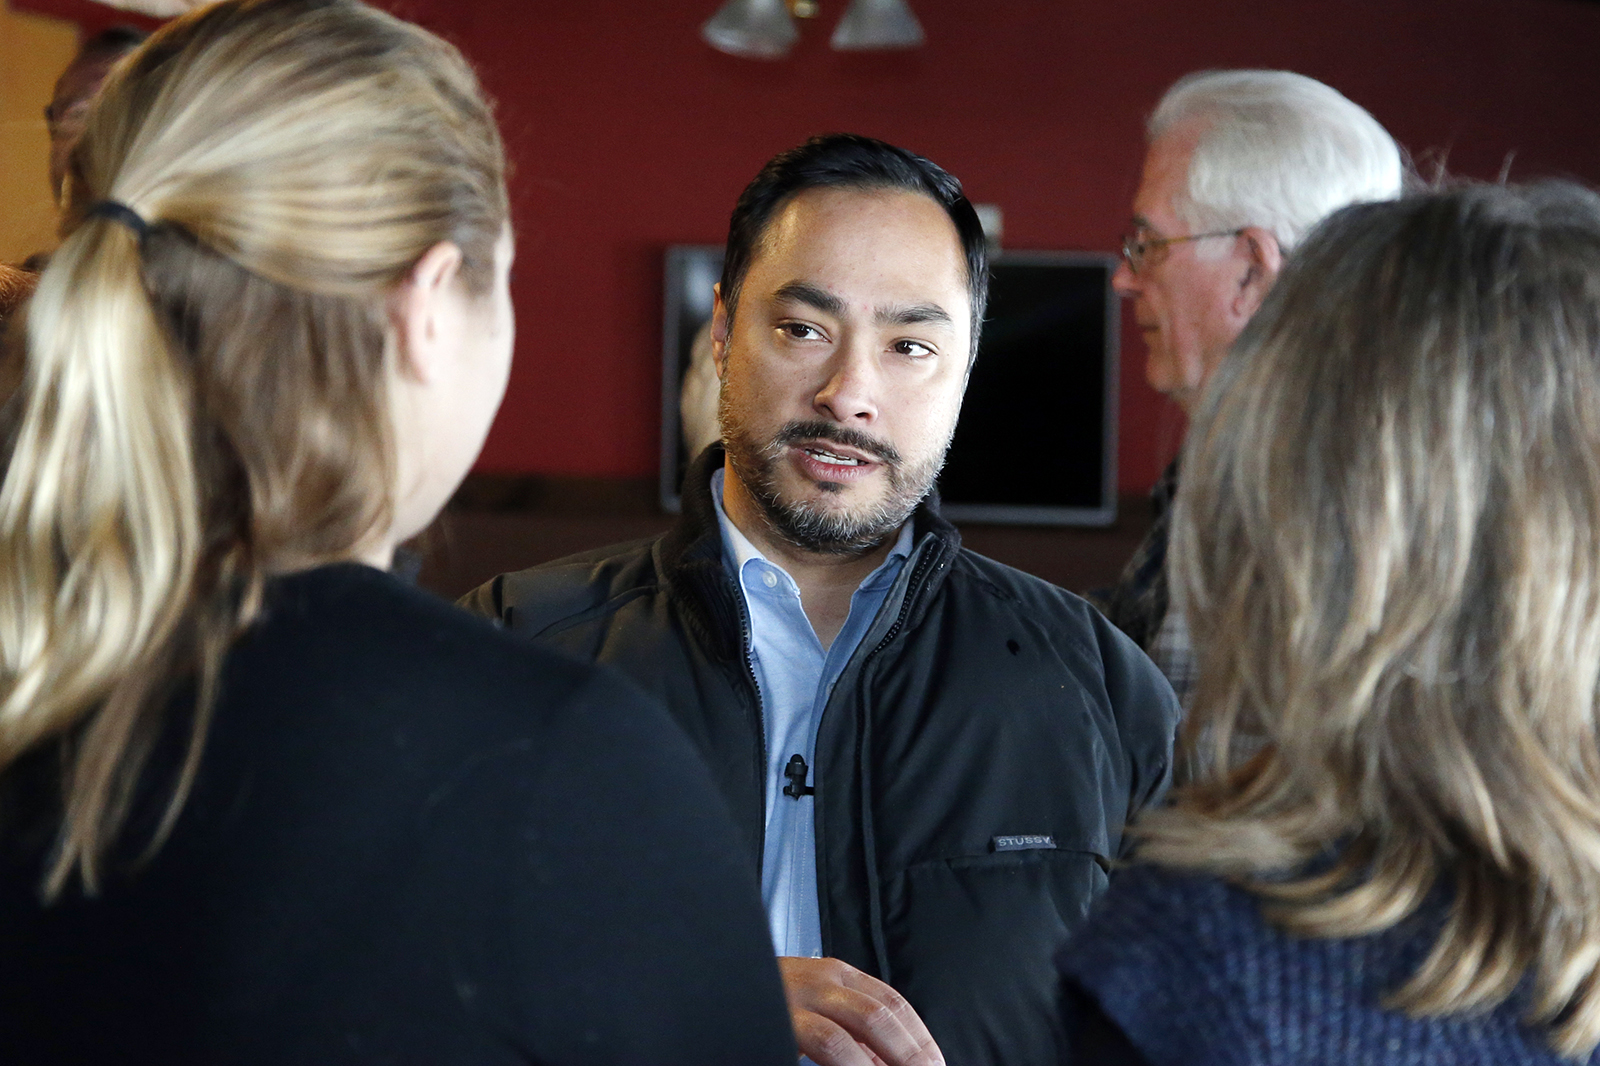 Rep. Joaquin Castro, D-Texas, talks with attendees at an Elizabeth Warren presidential campaign event, Wednesday, Jan. 22, 2020, in Denison, Iowa. (AP Photo/Sue Ogrocki)